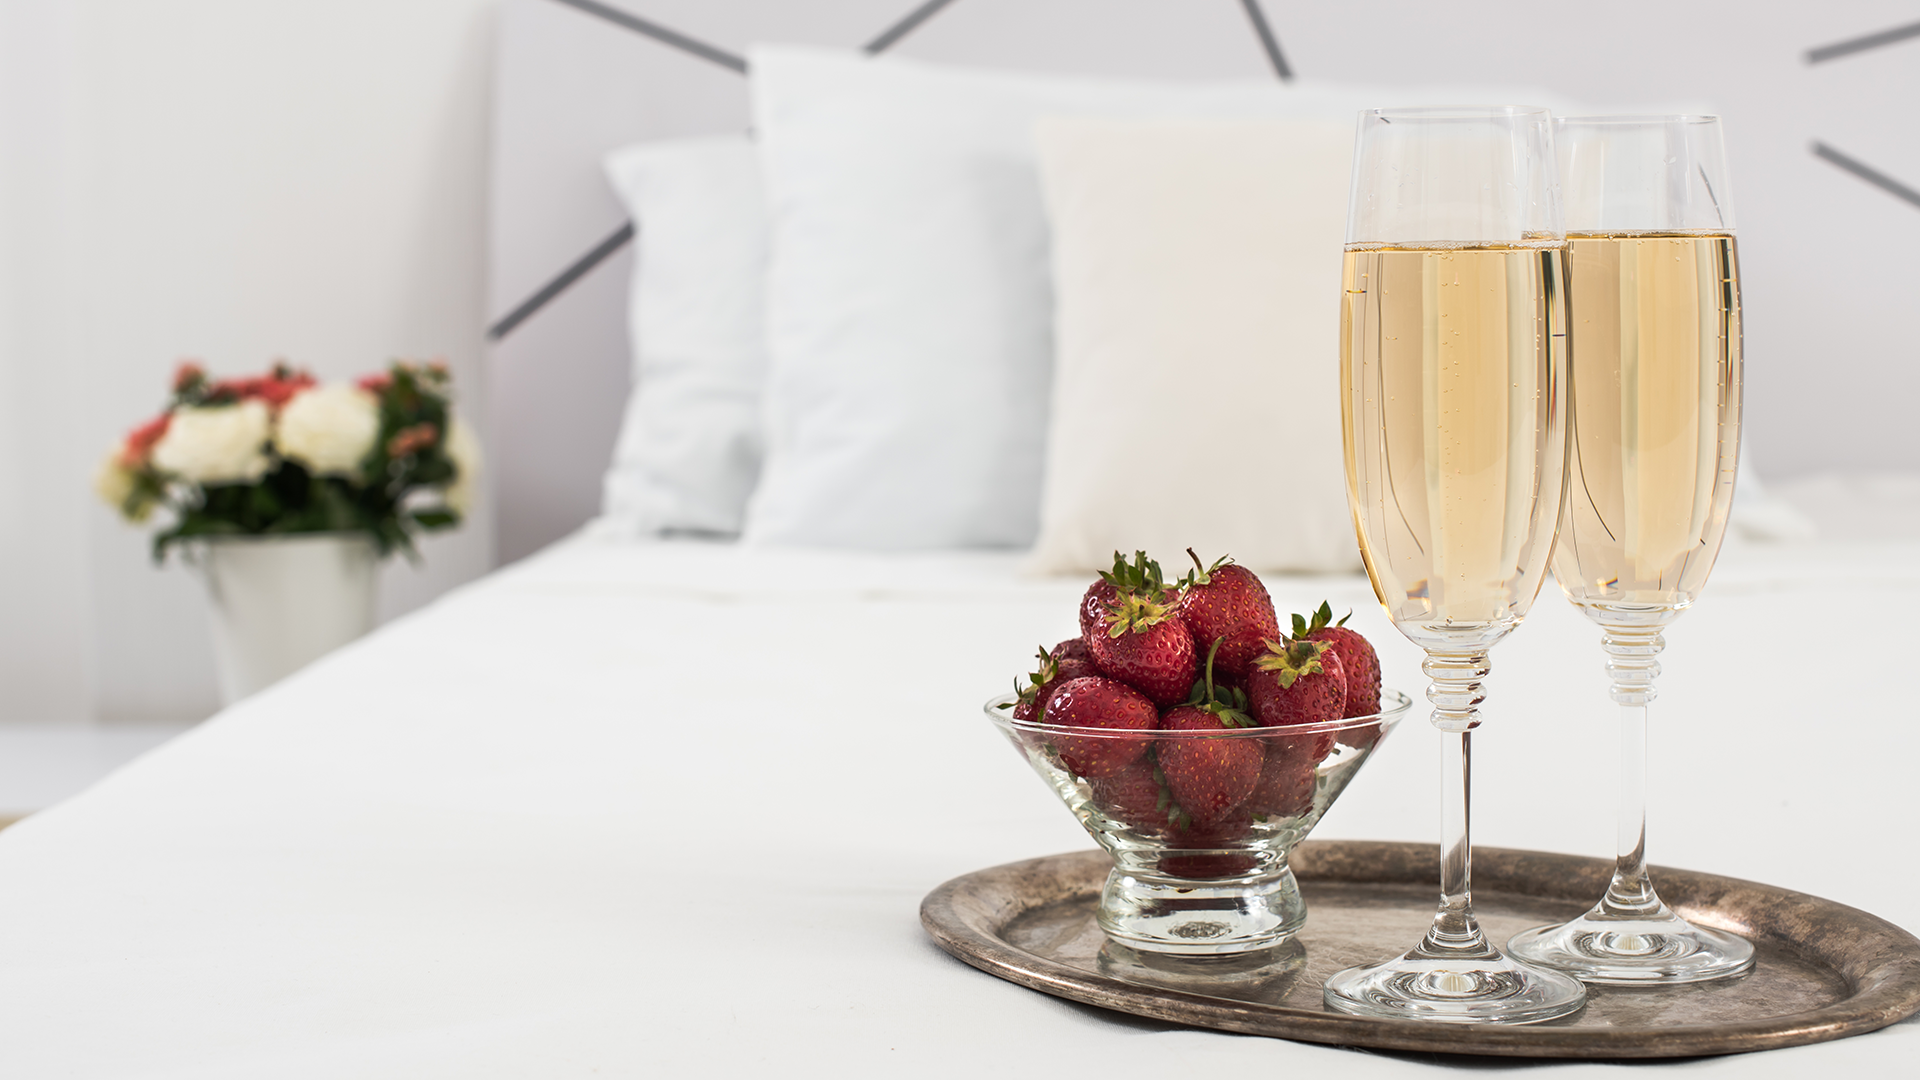 Glasses of champagne and a bowl of strawberries sit on an expensive mattress.